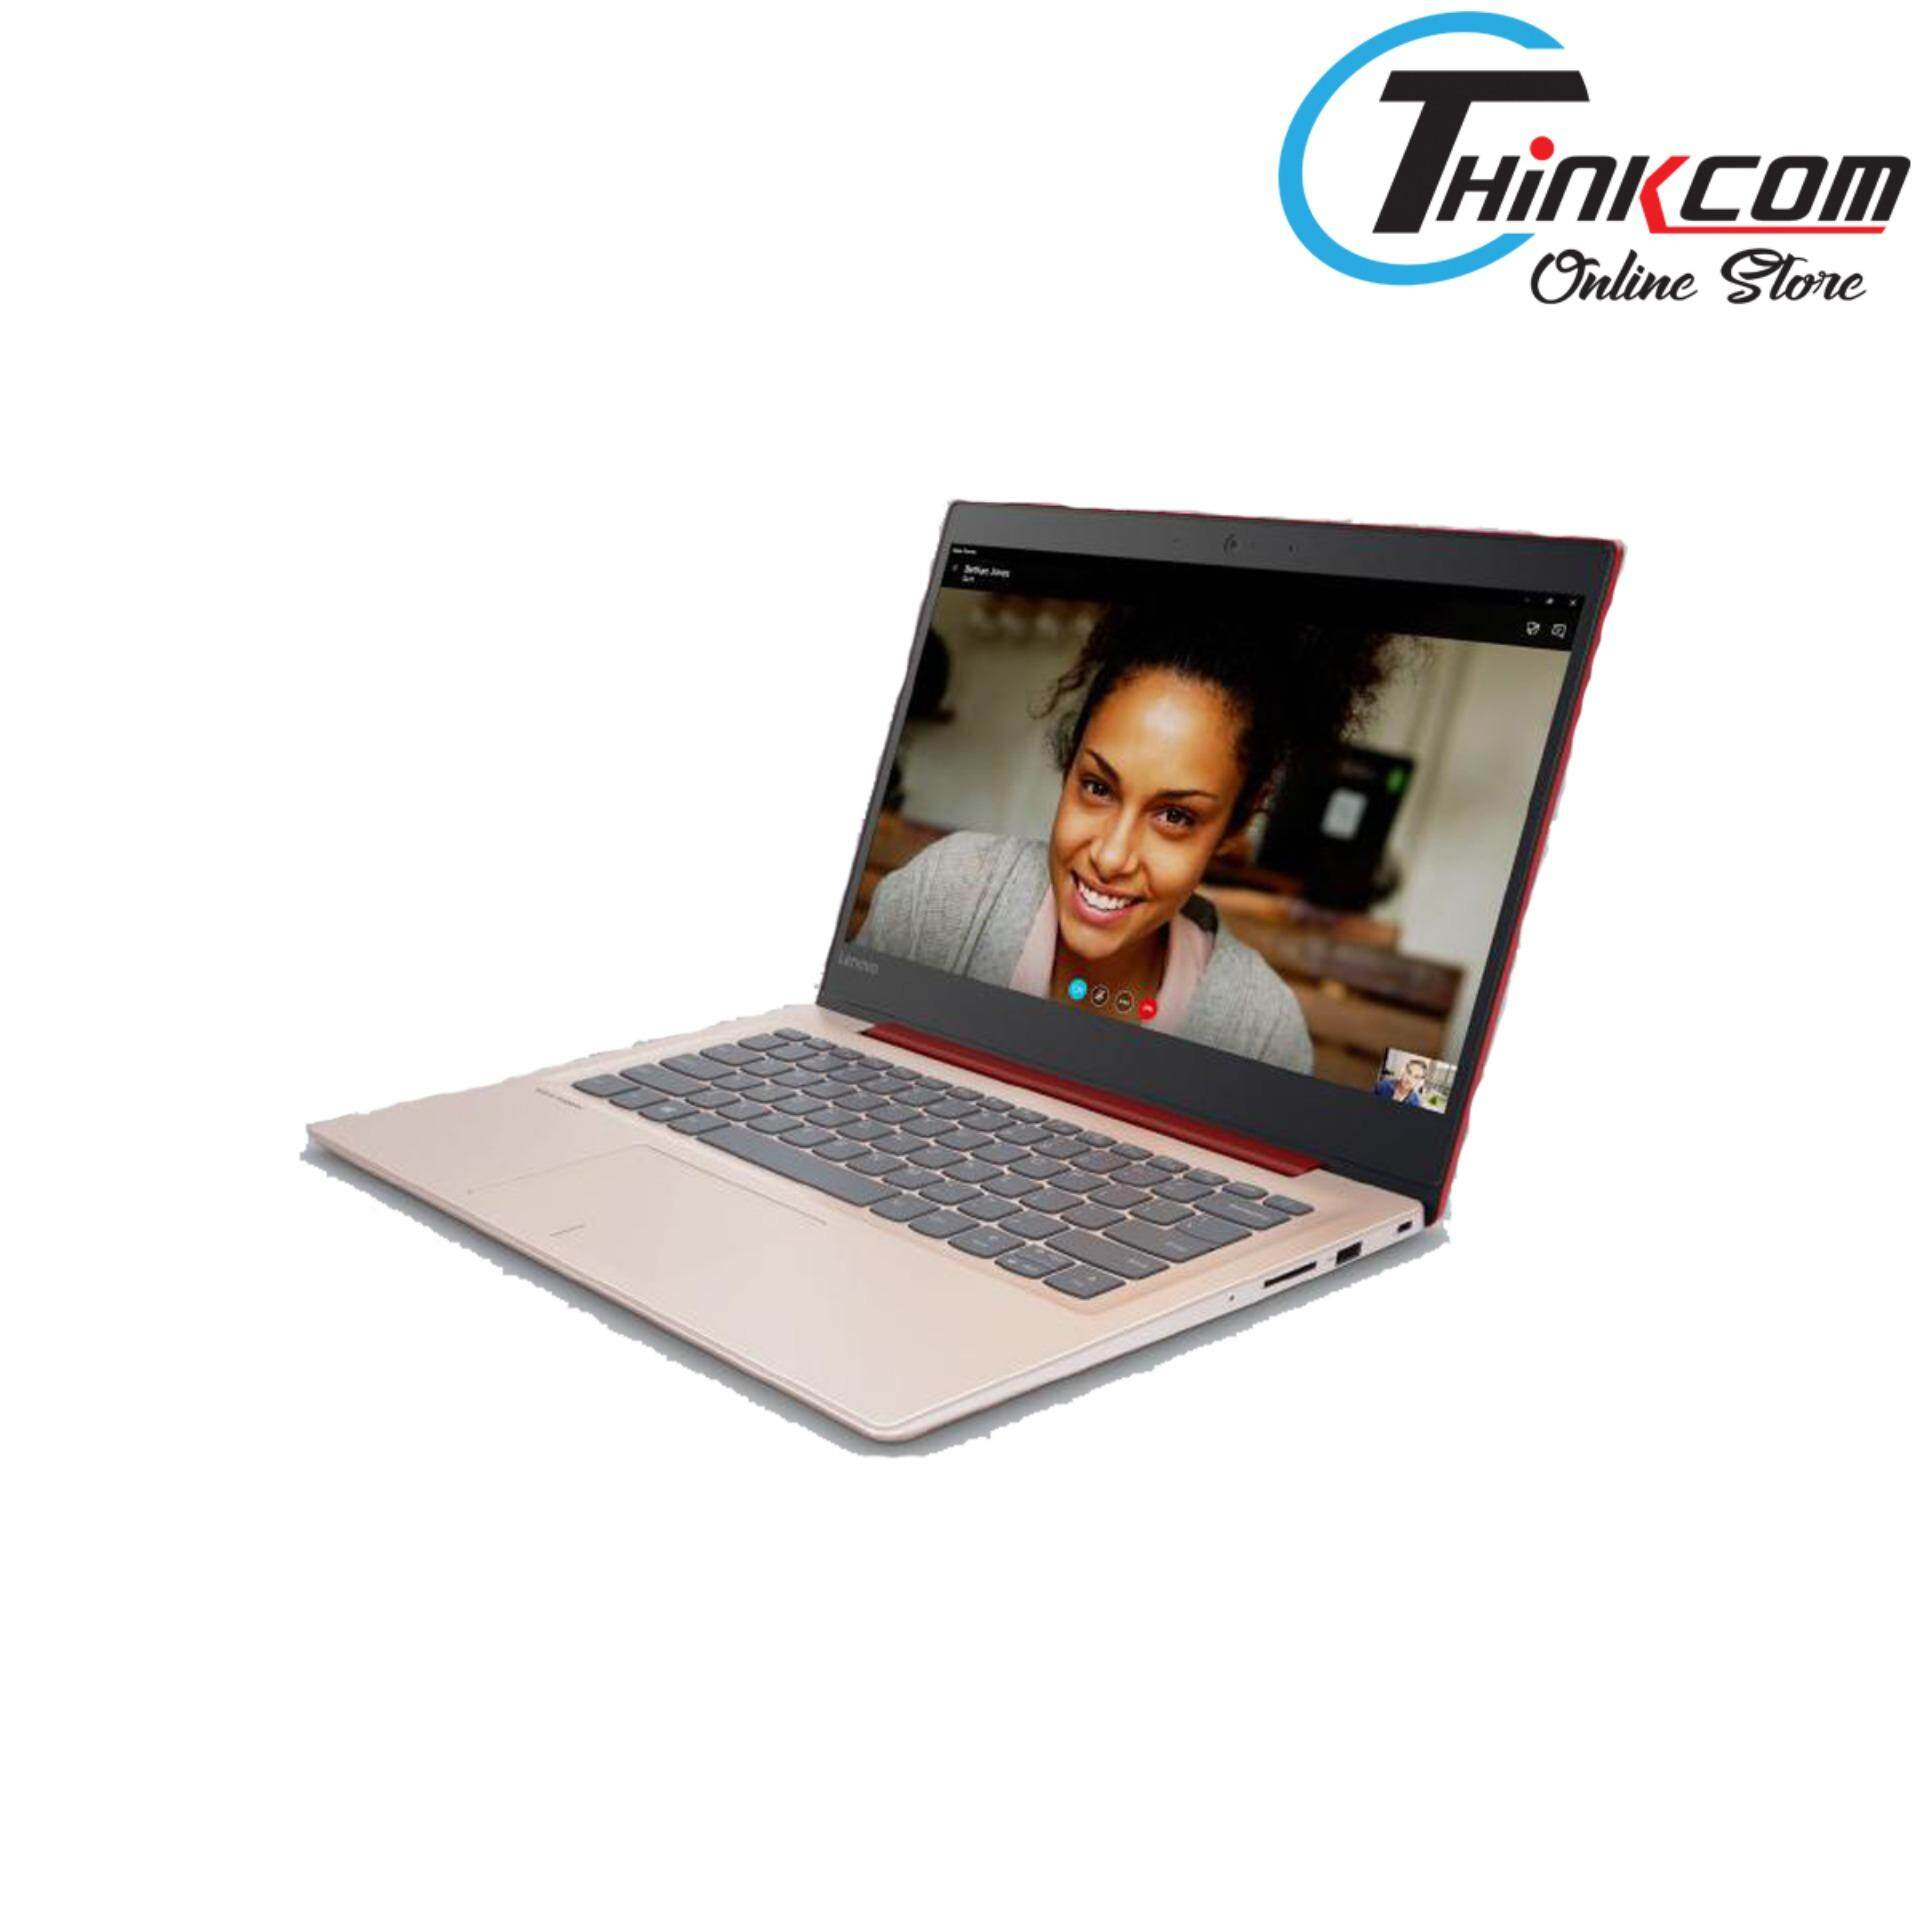 Lenovo Ideapad 320S 14IKBR-81BN0071MJ / 81BN0072MJ Notebook – Silver / Red ( Intel i5-8250U 1.6Ghz / 4GBD4 / 1TB / MX110 2GB DDR5 / 14 FHD / W10H / 2Y On-Site ) Malaysia